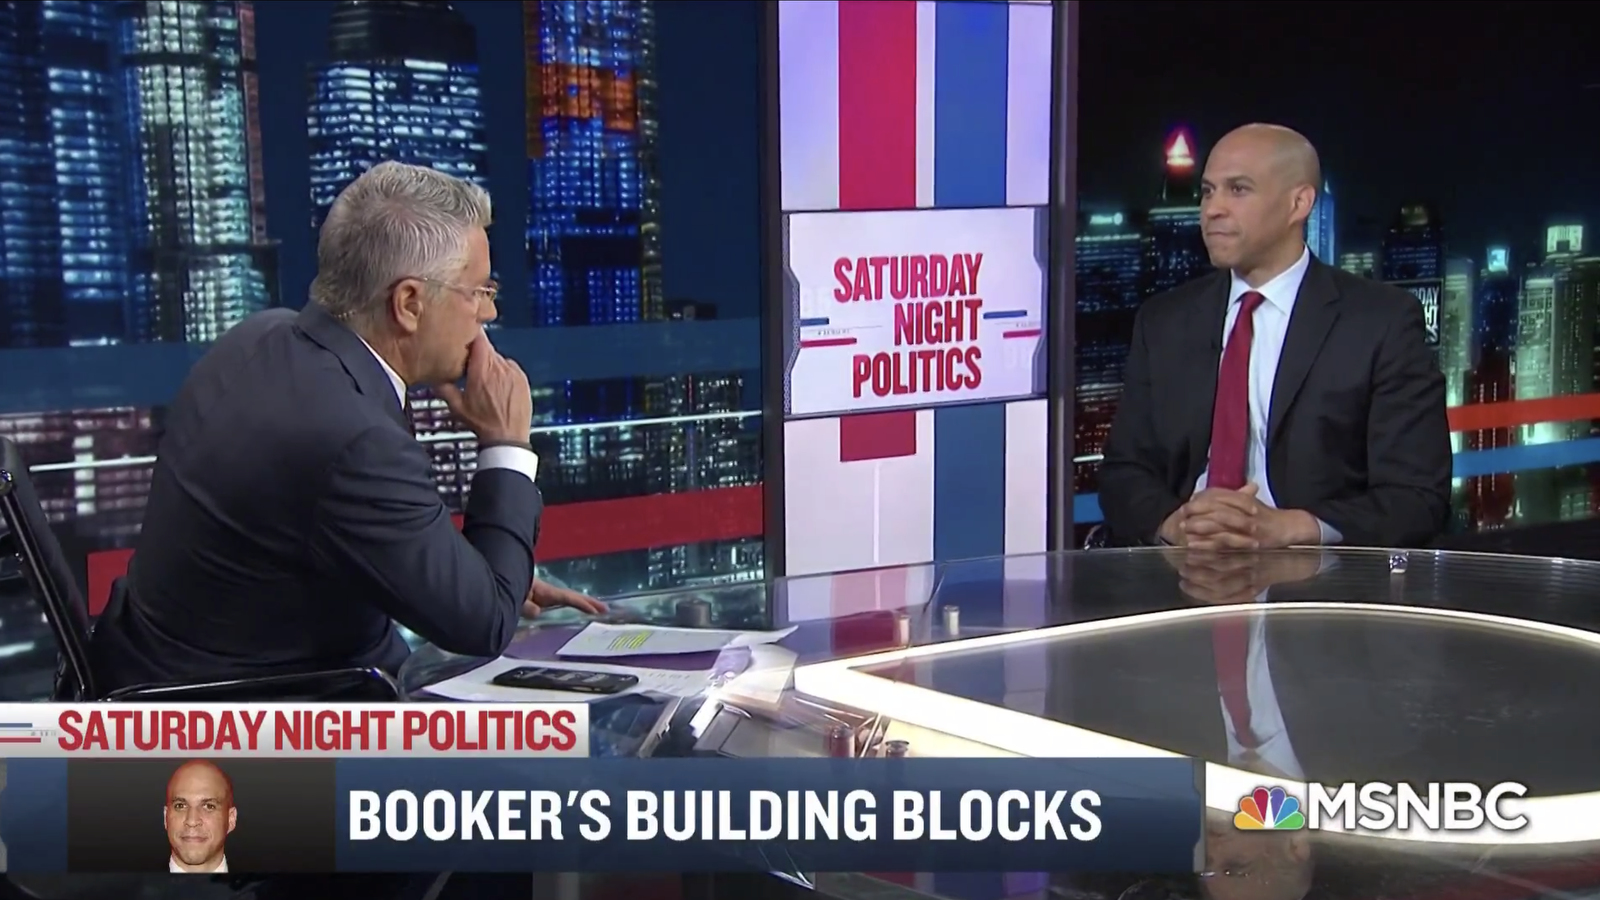 NCS_MSNBC-Saturday-Night-Politics_0049